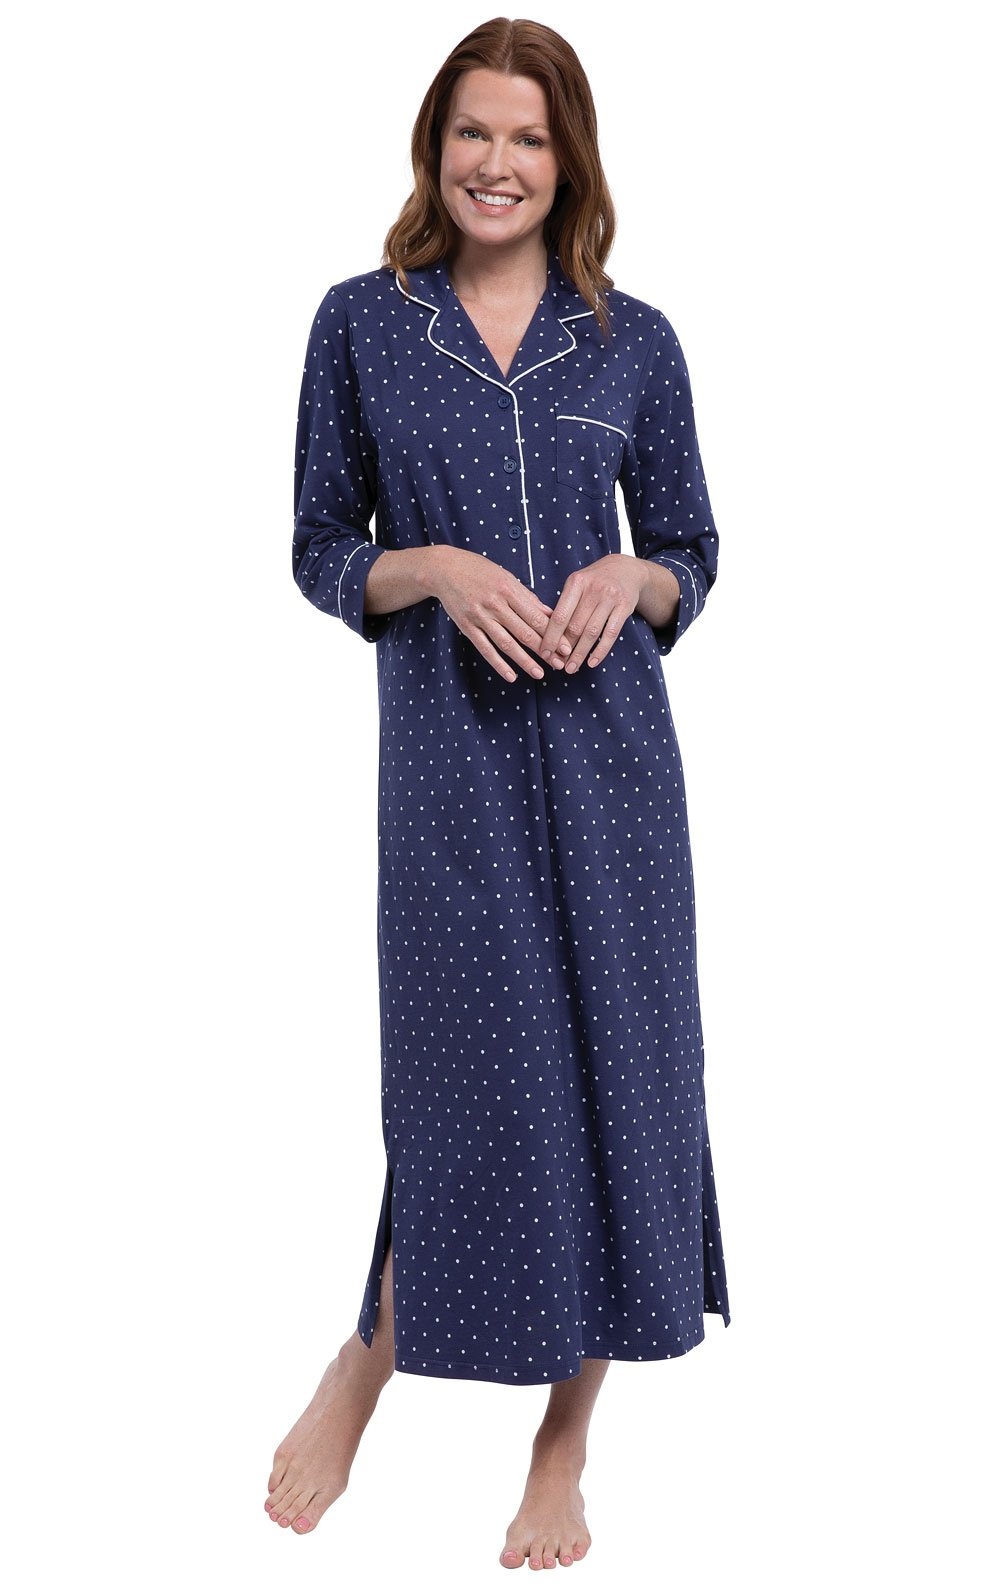 PajamaGram Women's Nightgown Cotton Soft - Women's Night Gown, Navy, M, 8-10